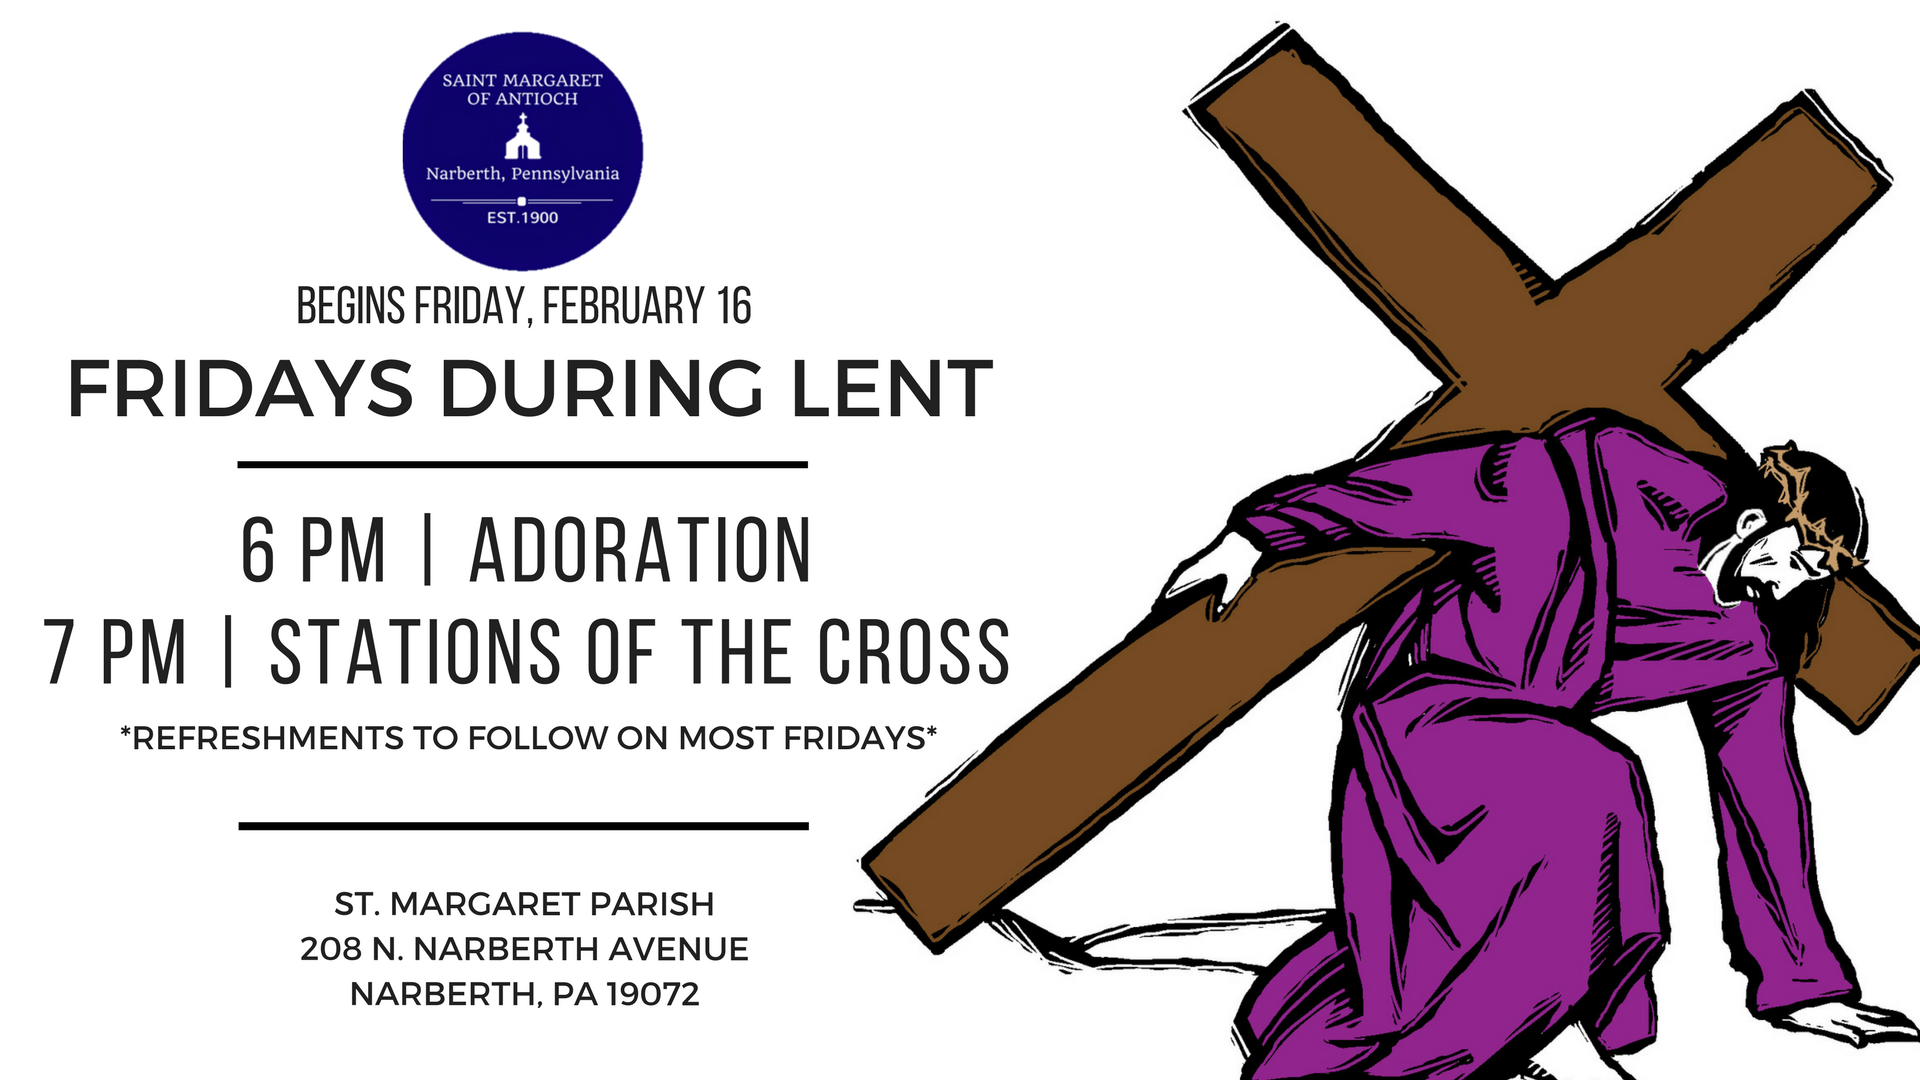 Lenten fridays 2018 facebook event welcome to saint margaret parish lenten fridays 2018 facebook event buycottarizona Image collections